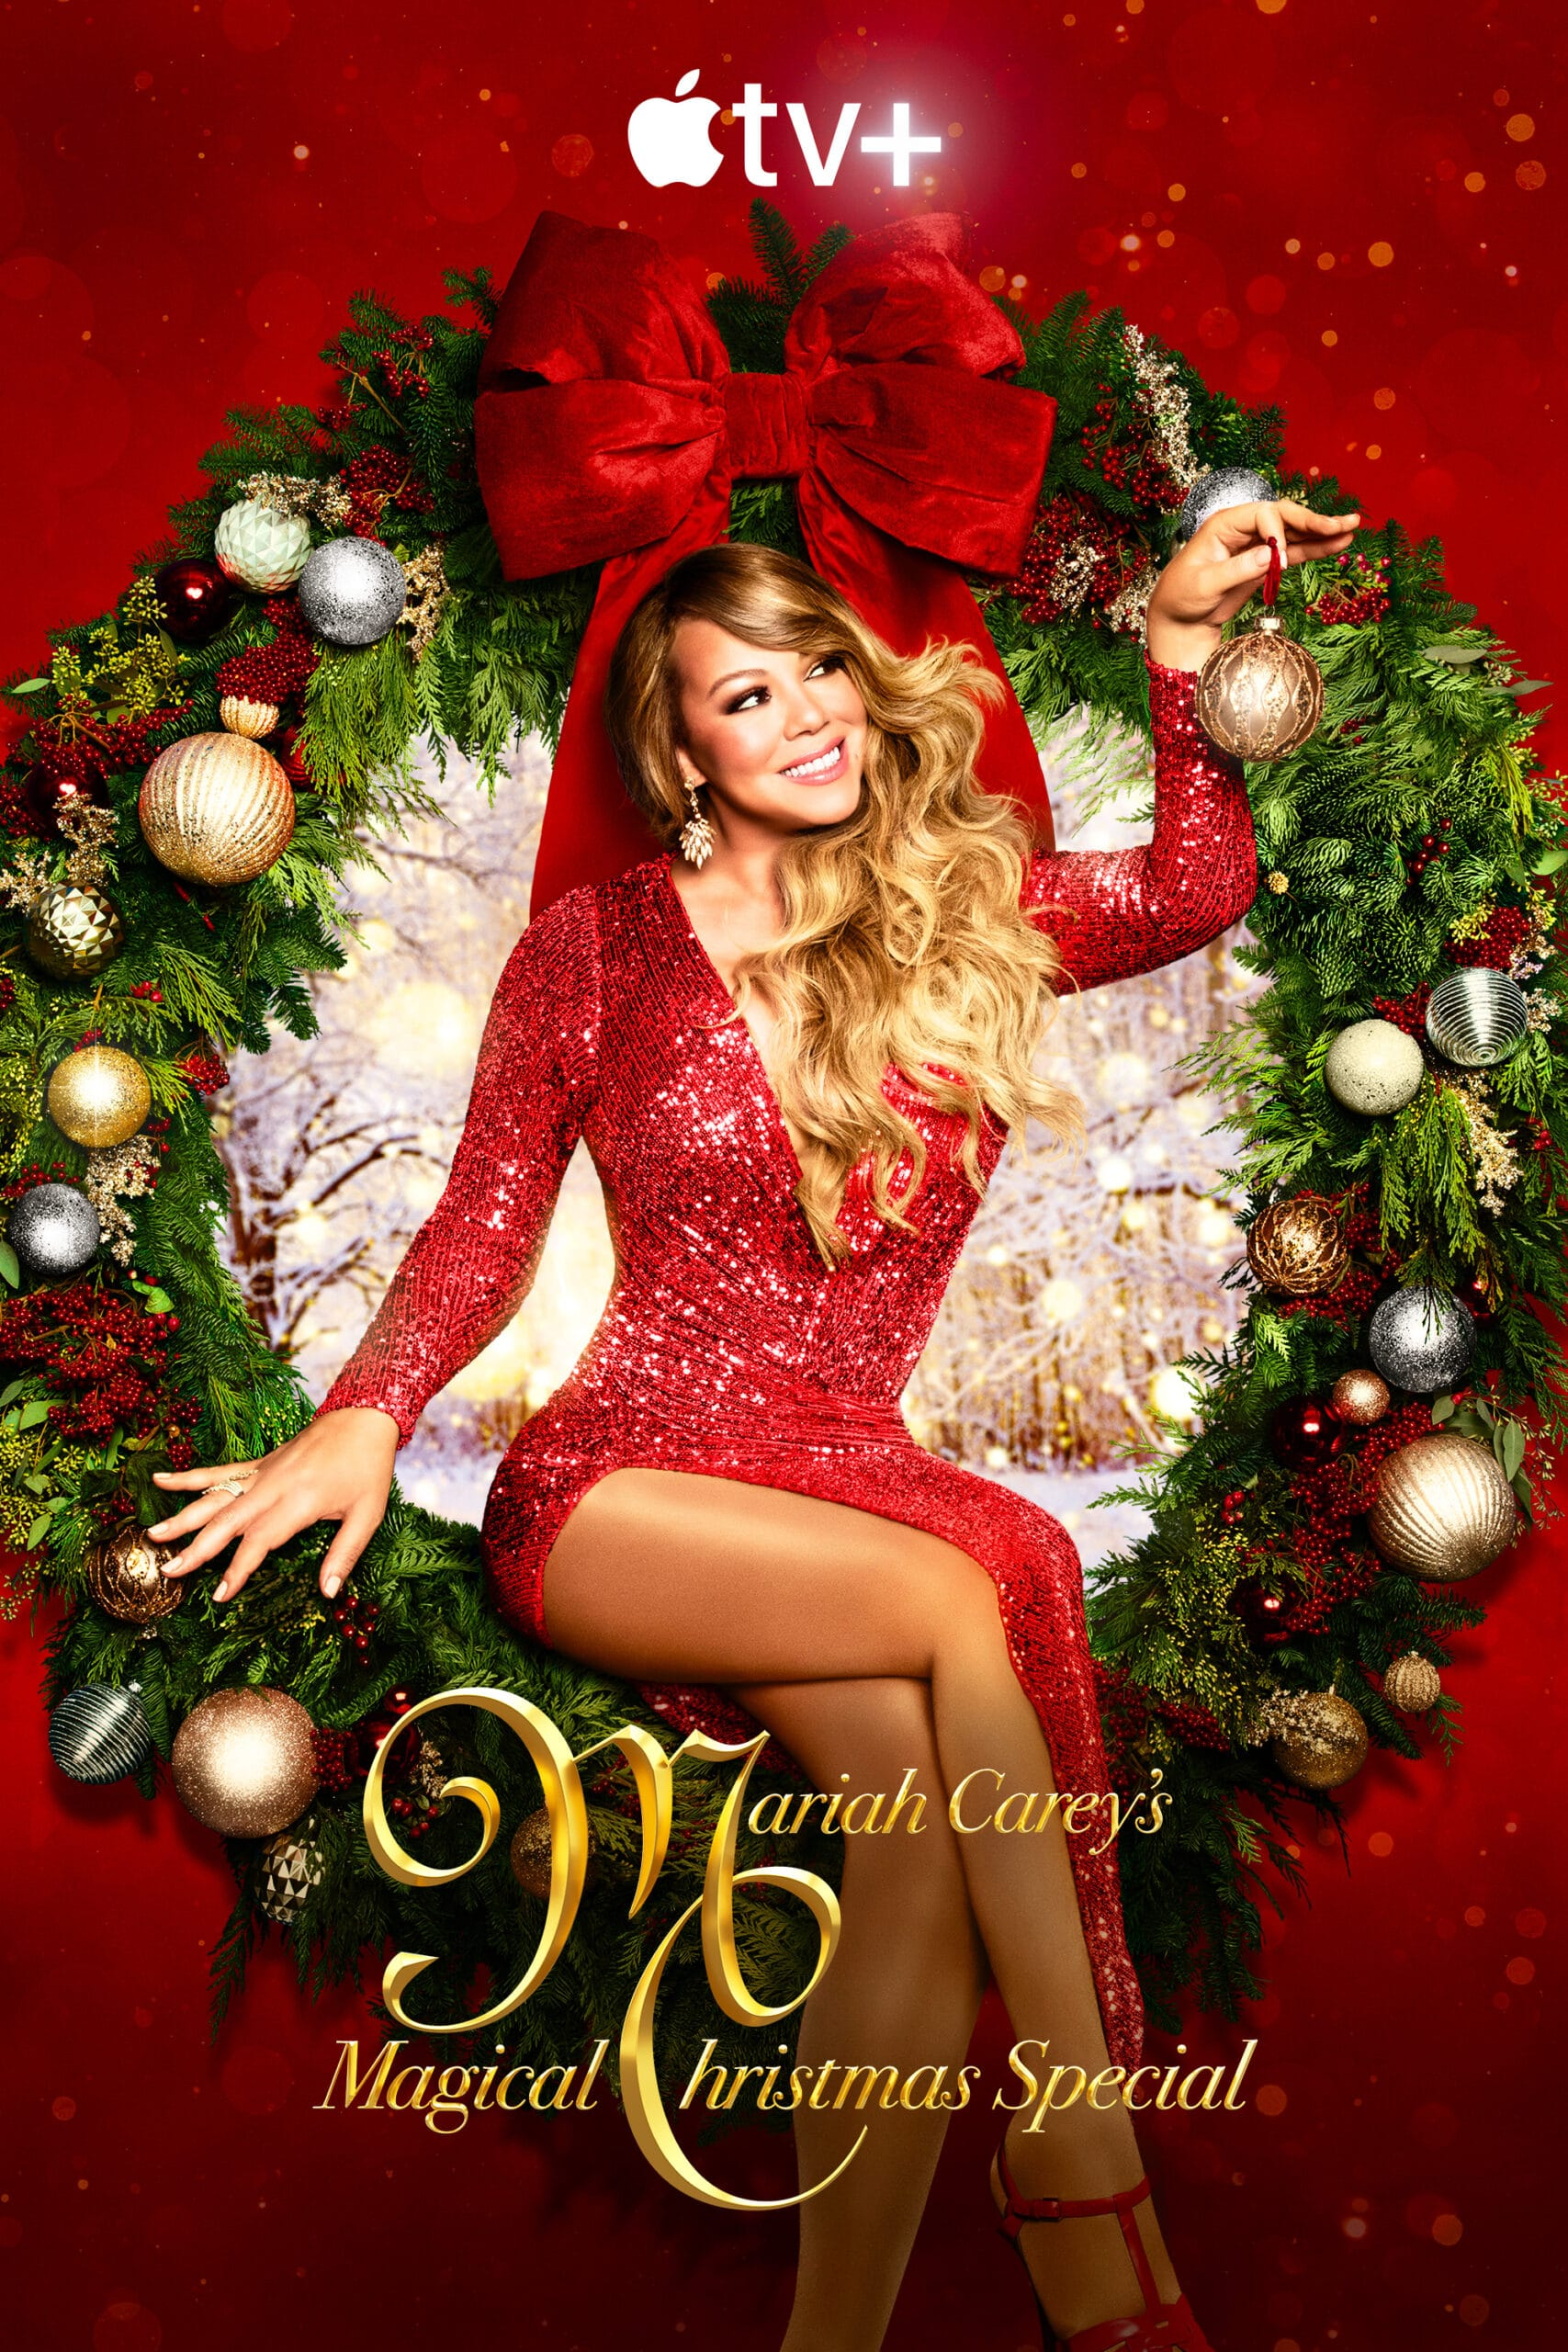 Especial de Natal do Apple TV+ com Mariah Carey